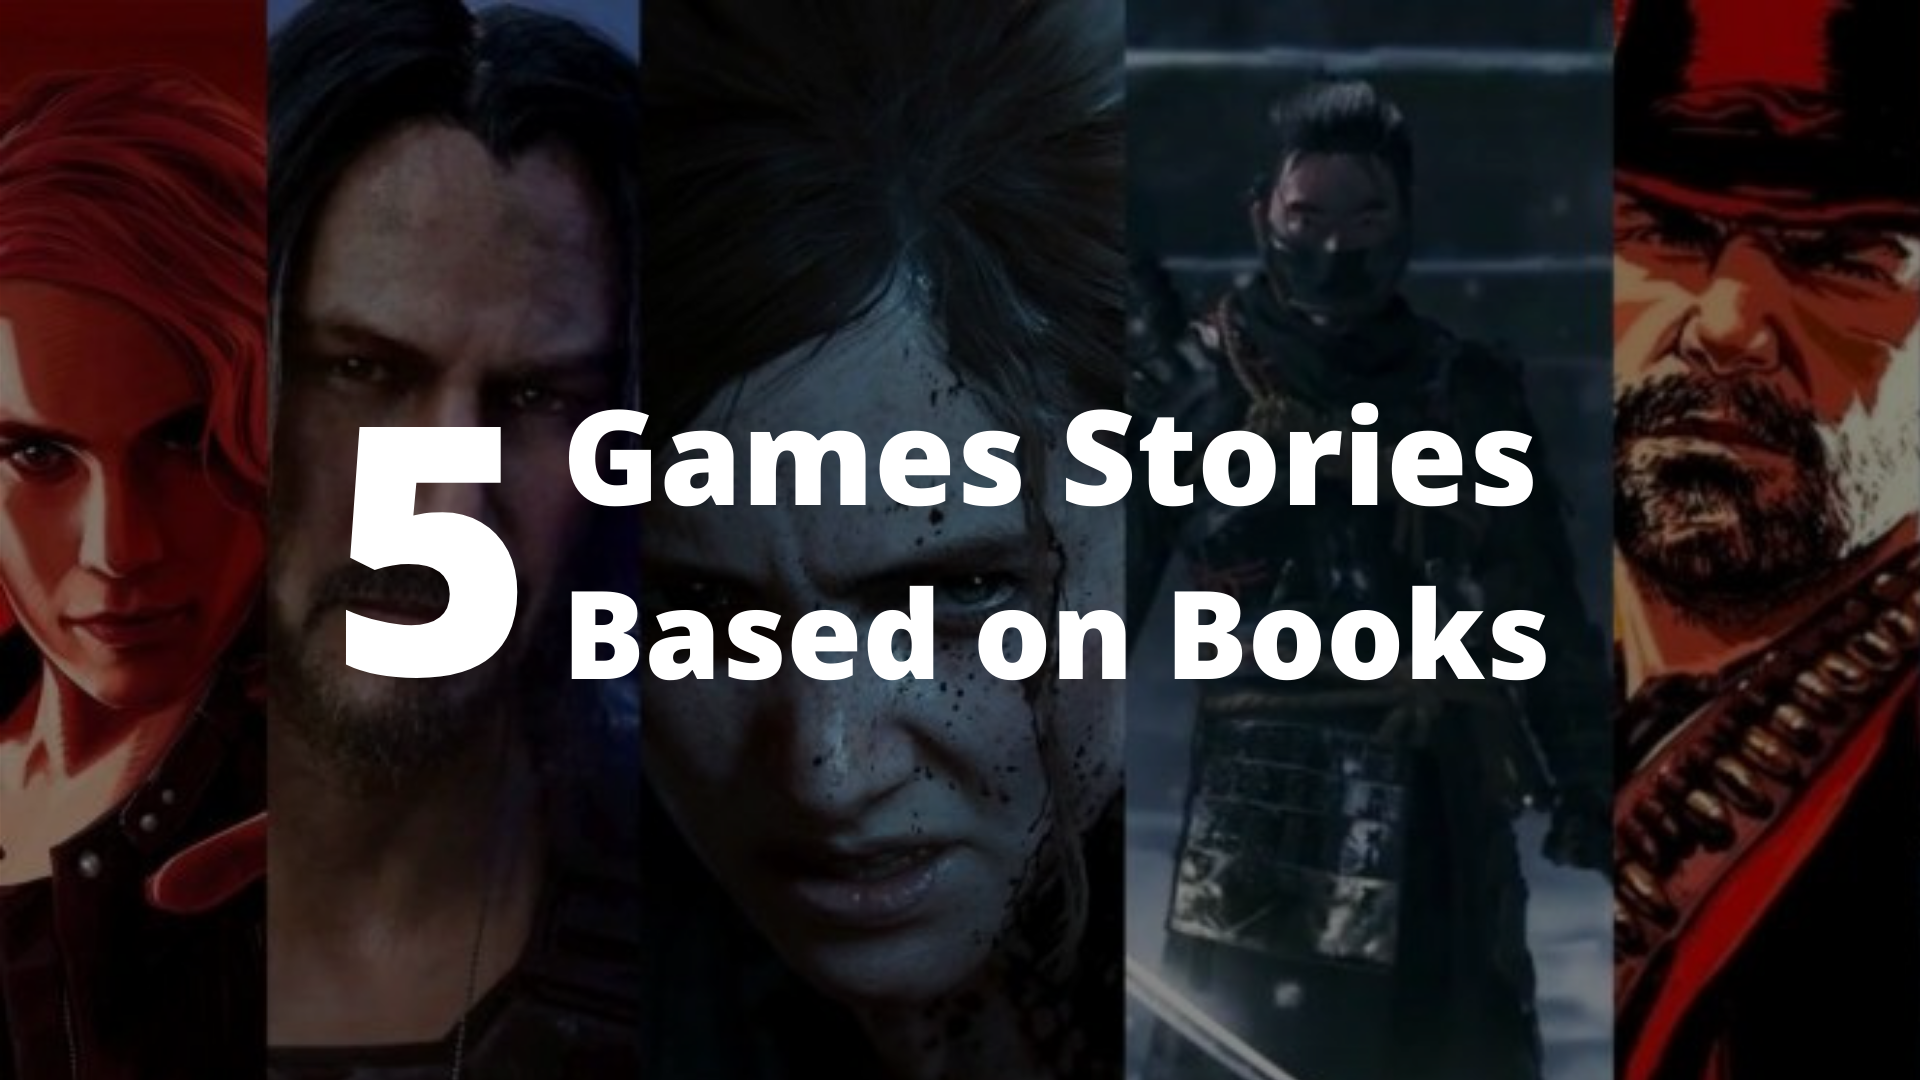 5 Games Stories Based